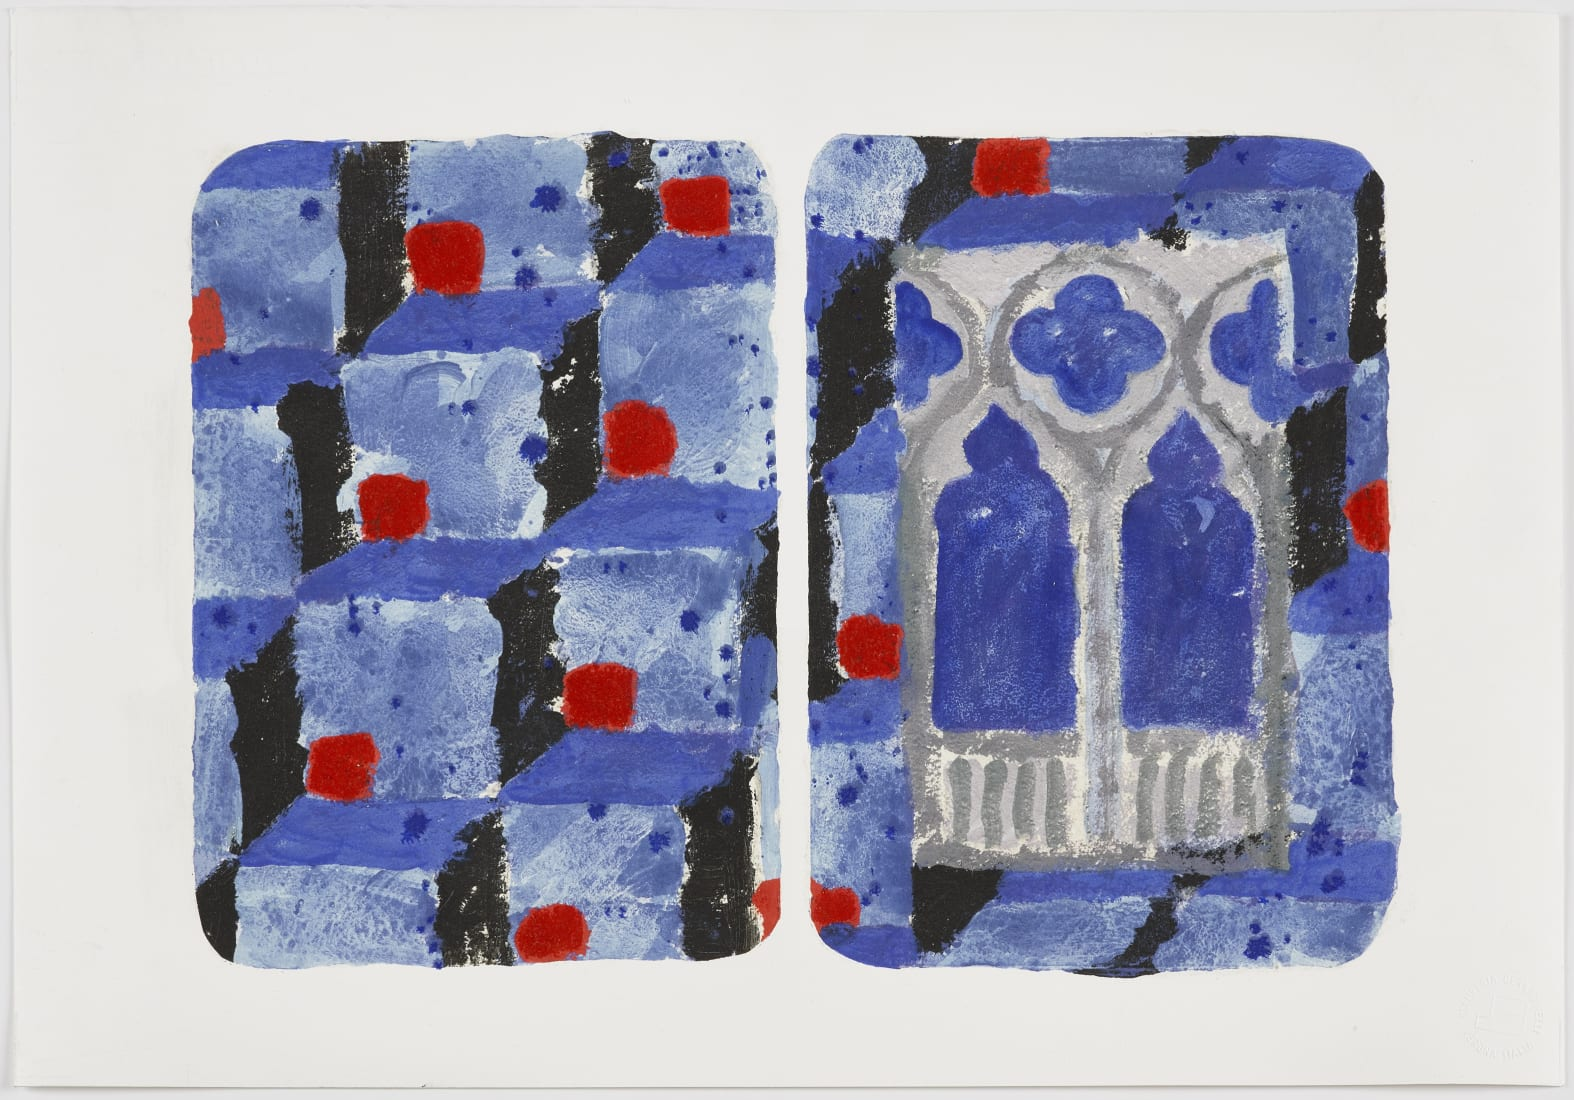 <p><strong><em>The Stones of Venice, ca&#8217; Foscari II, diptych</em></strong><br />2018<br />Inkjet prints with screenprint, carborundum and hand-colouring on Hahnem&#252;hle 350gsm paper<br />Paper and image 38.0 x 56.0 cm&#160;<br />Editions of 35</p>